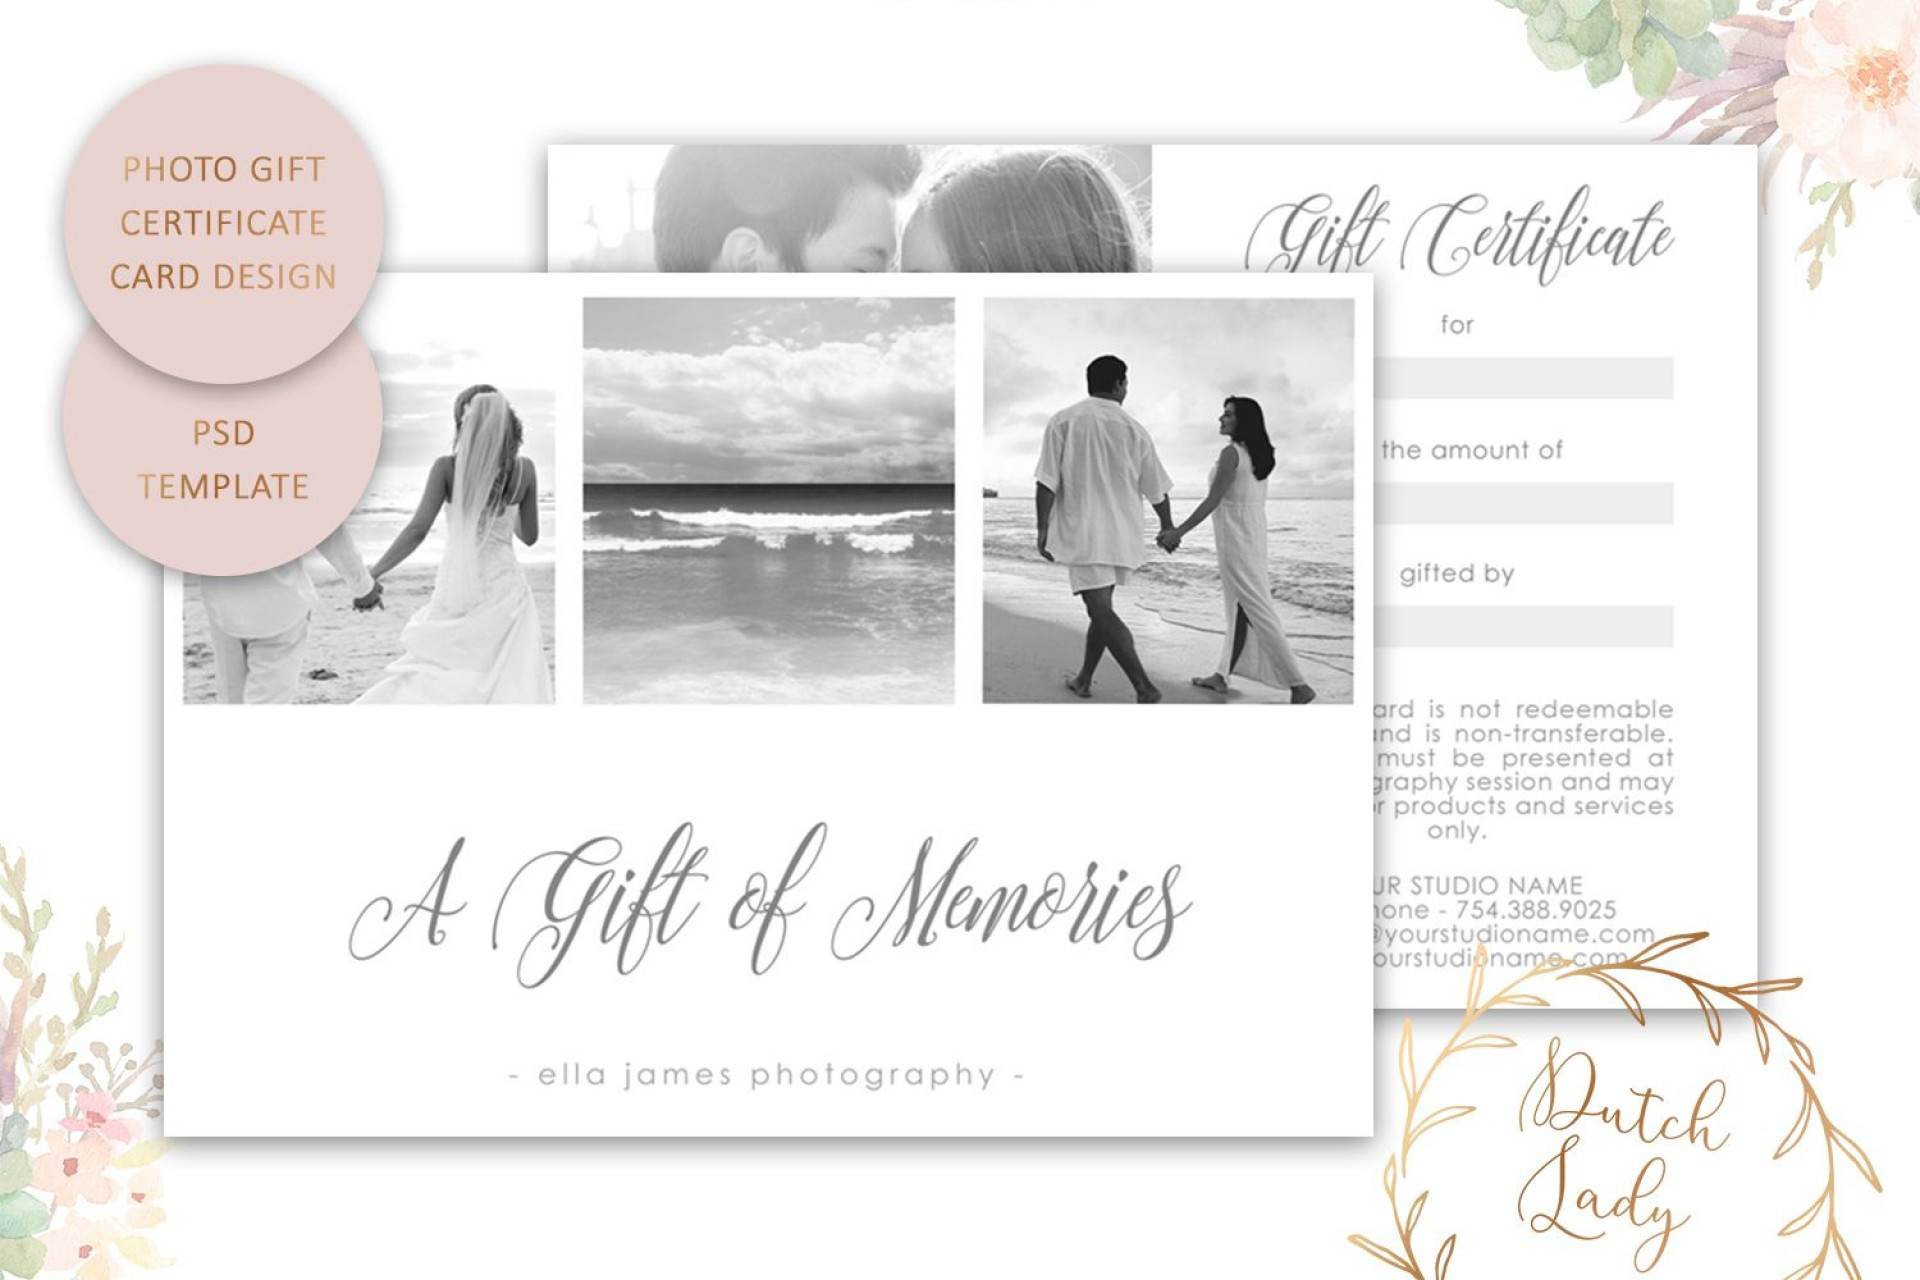 008 Remarkable Photography Session Gift Certificate Template Highest Quality  Photo Free Photoshoot1920